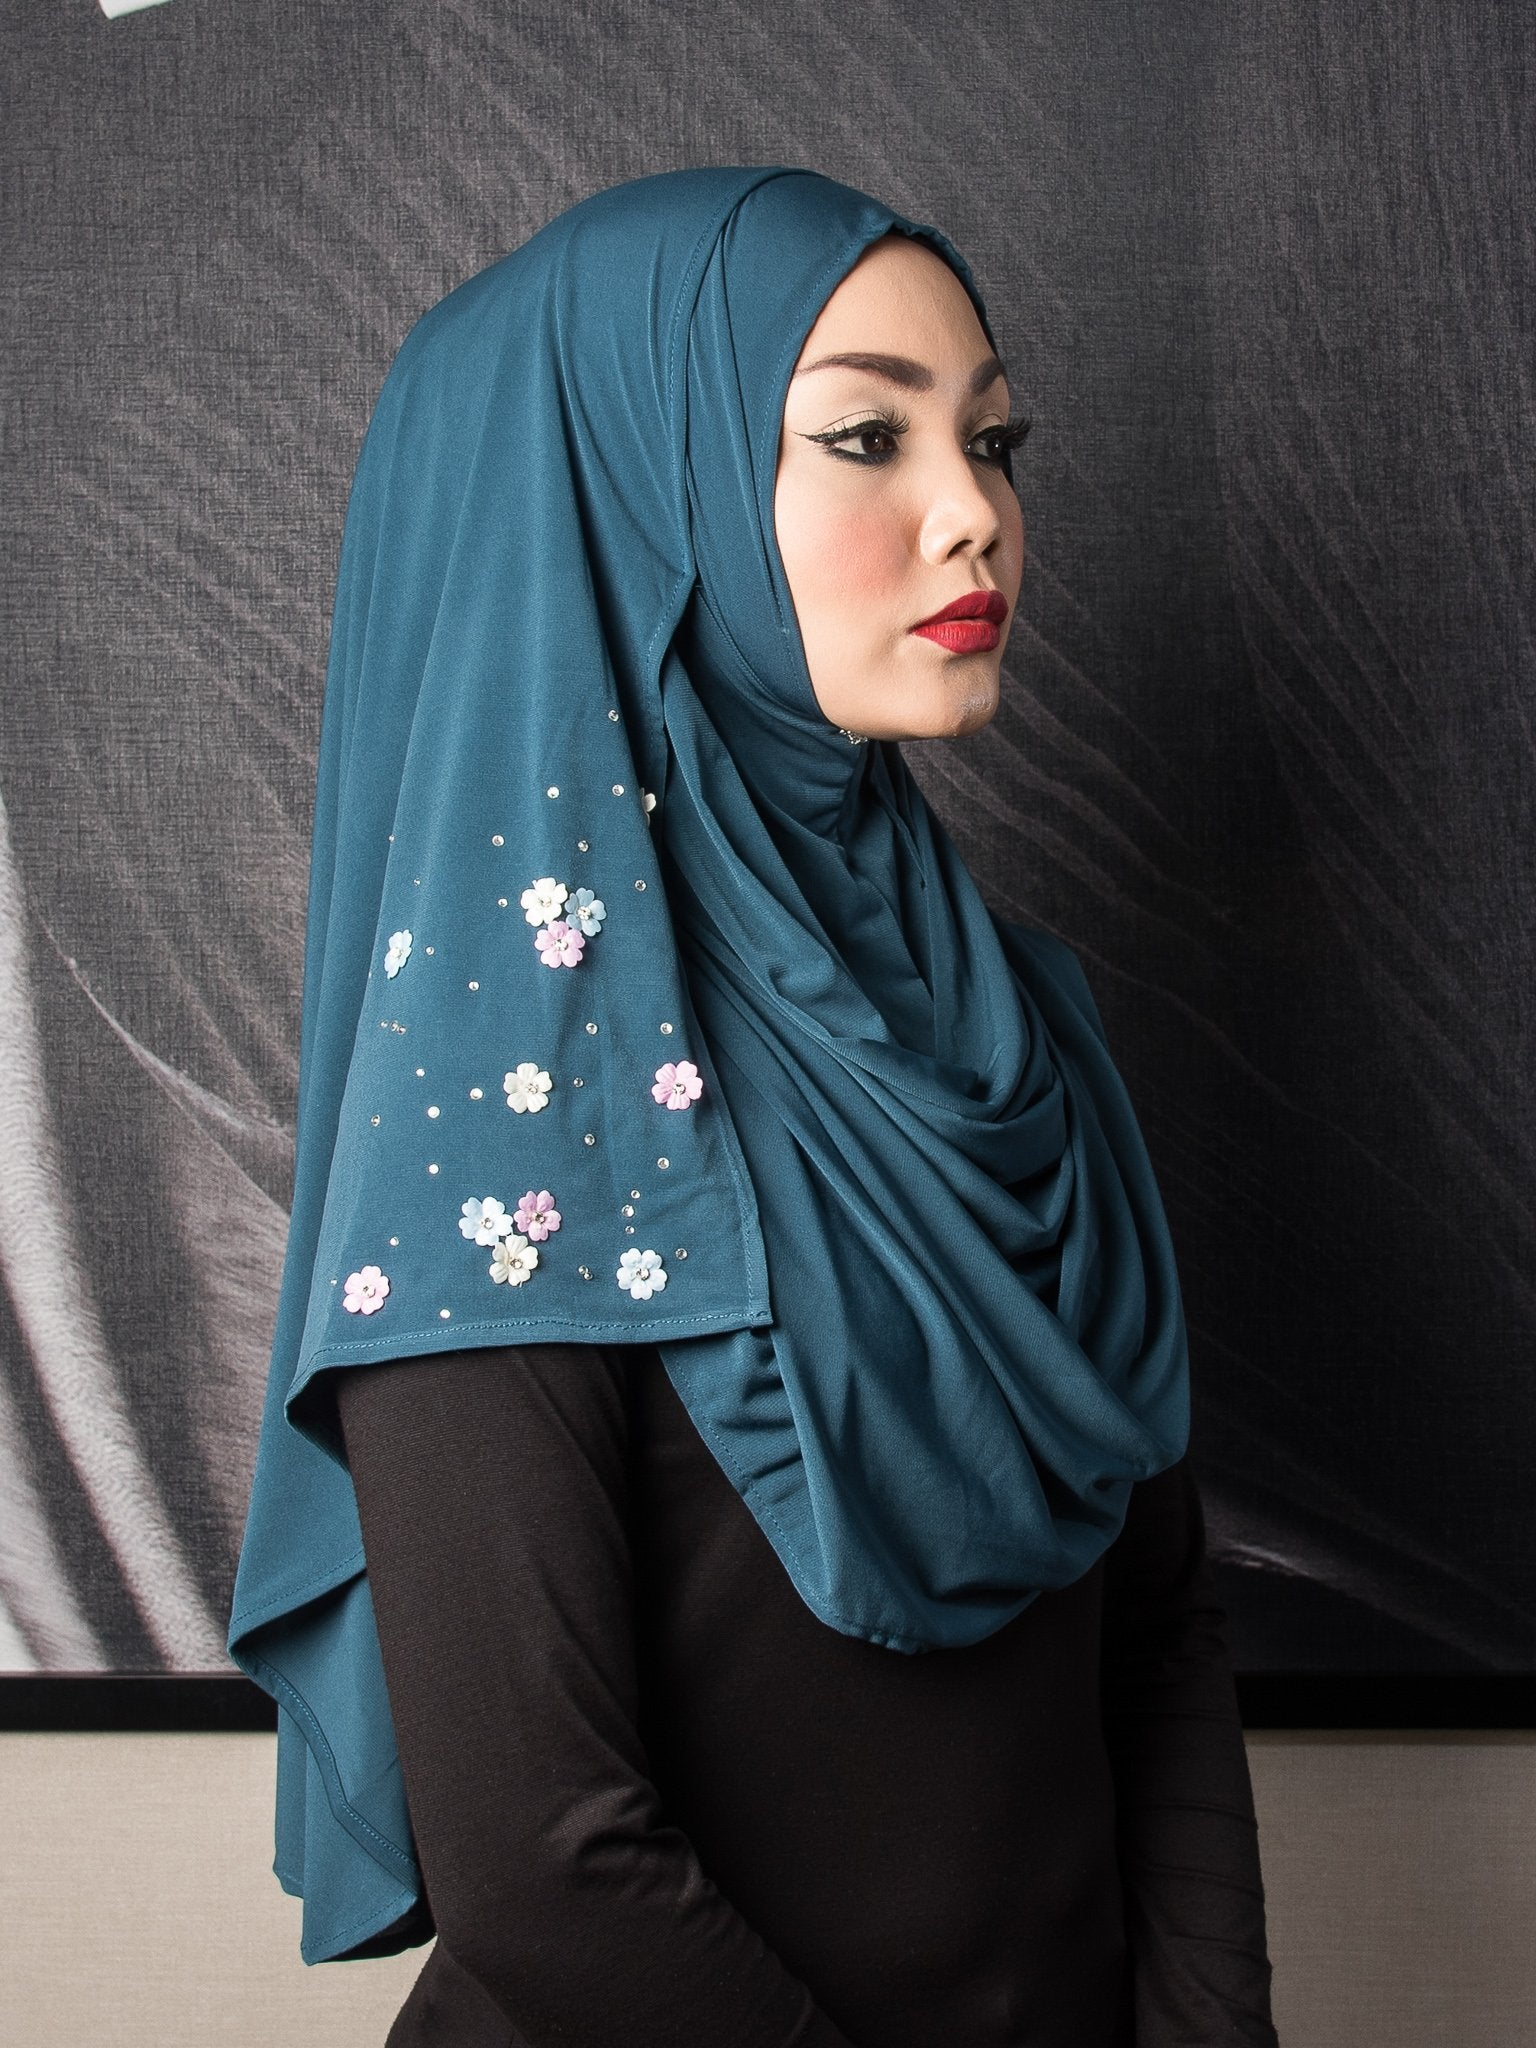 Mini Flowers Instant Shawl - Peacock Blue